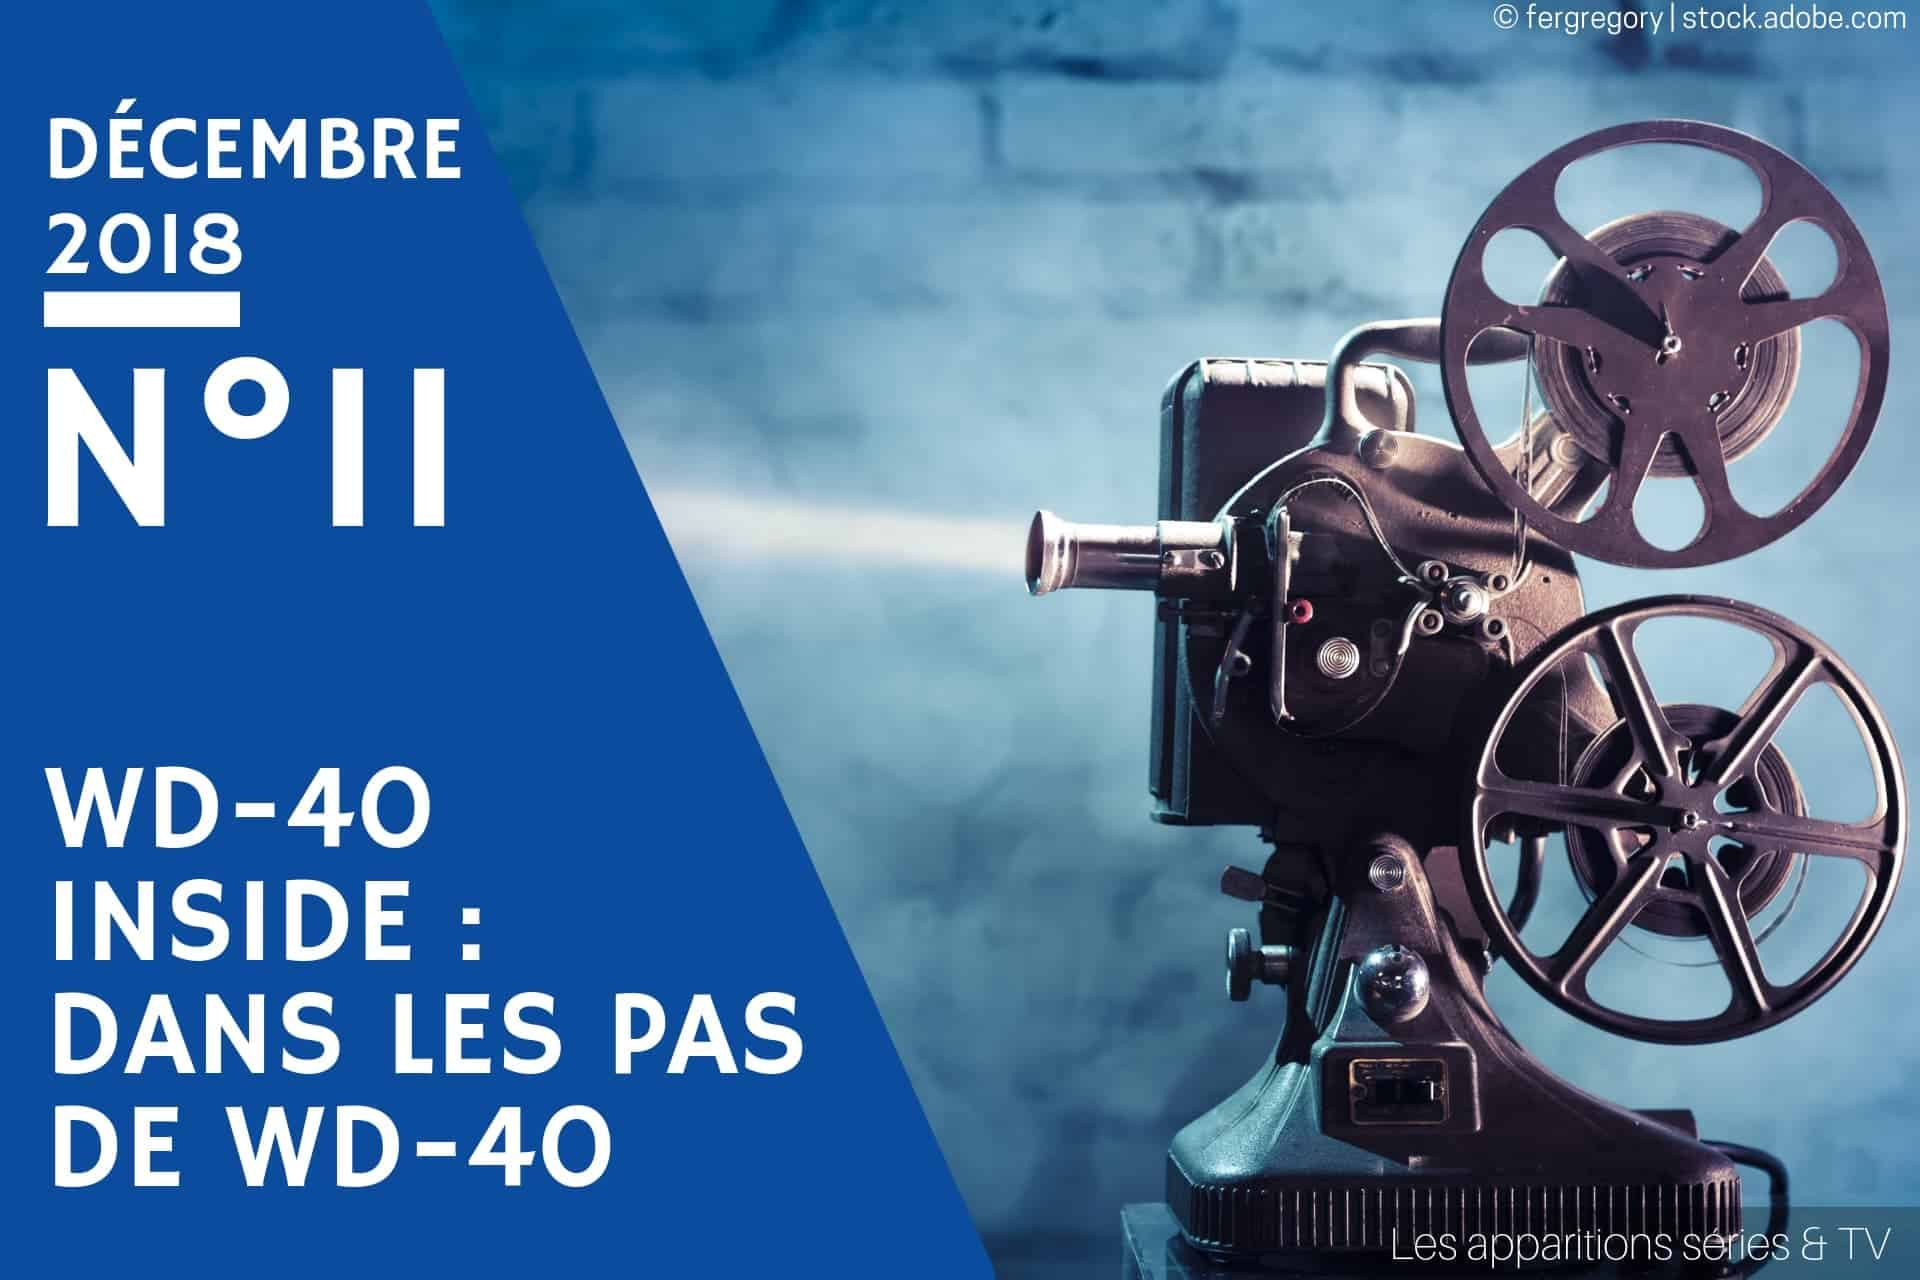 wd40 inside apparitions séries et tv juin